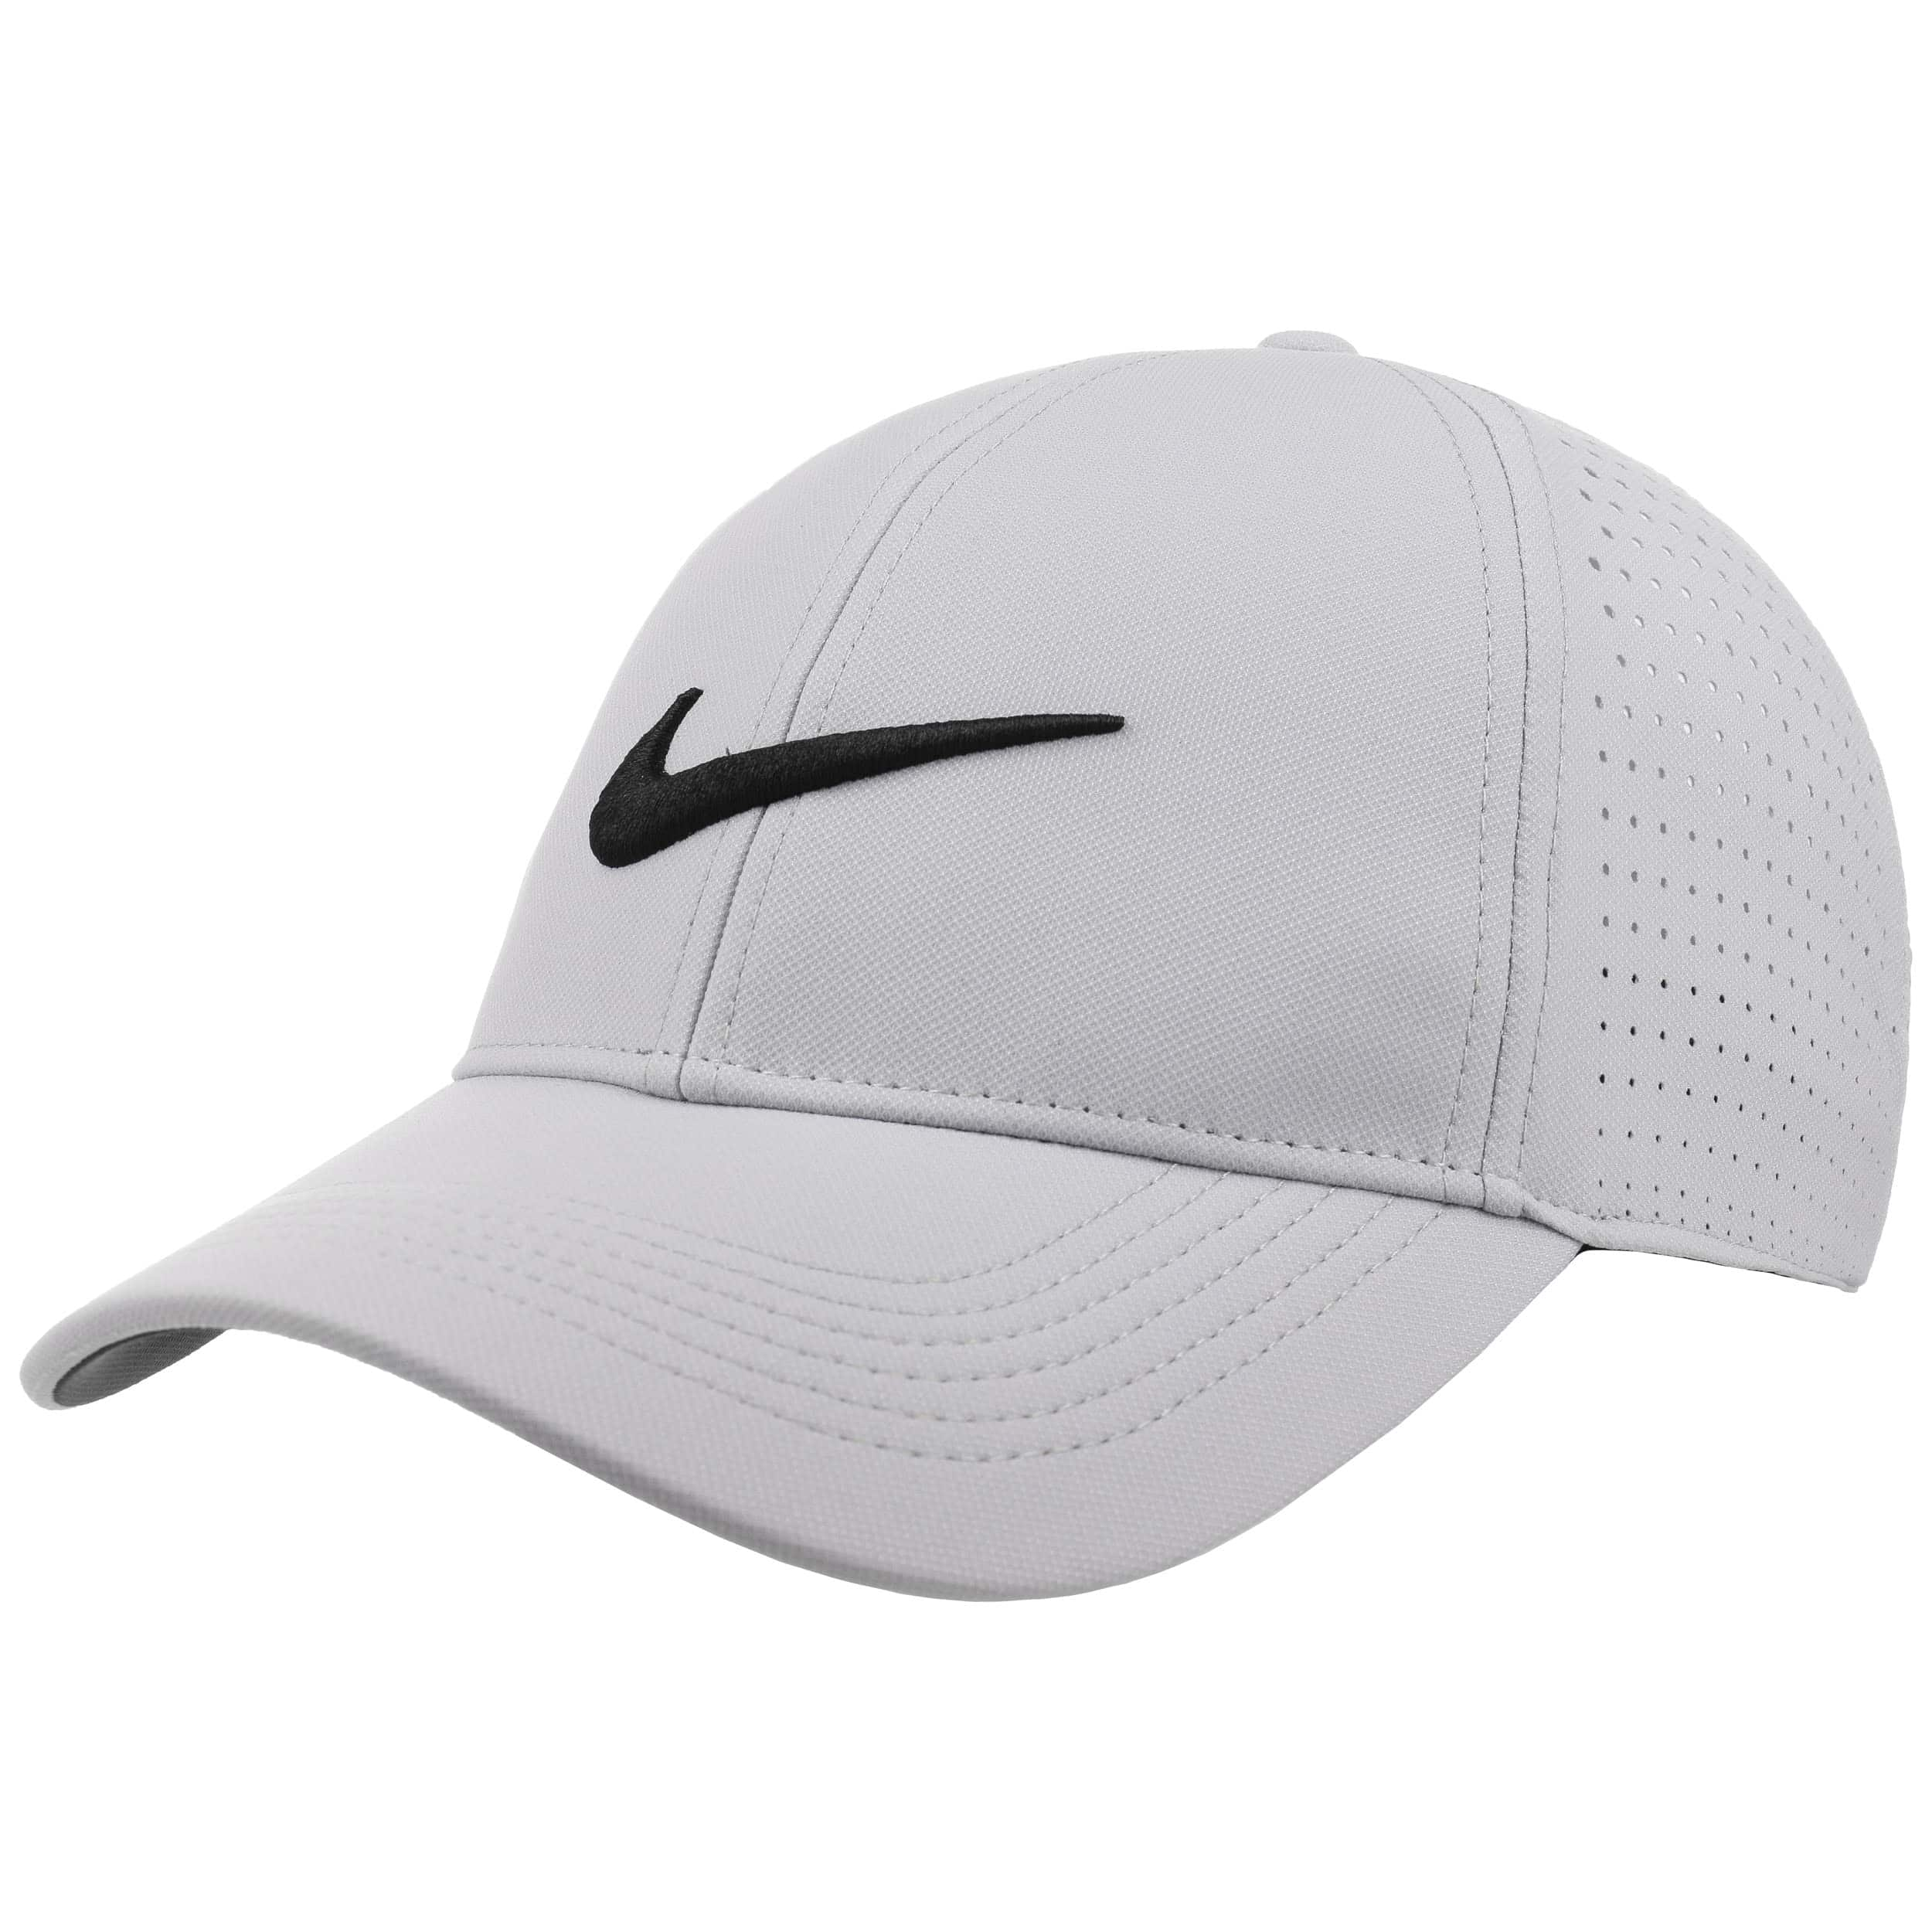 ... new style legacy 91 perf strapback cap by nike 6 950ae b098c ... 20de7197b66d